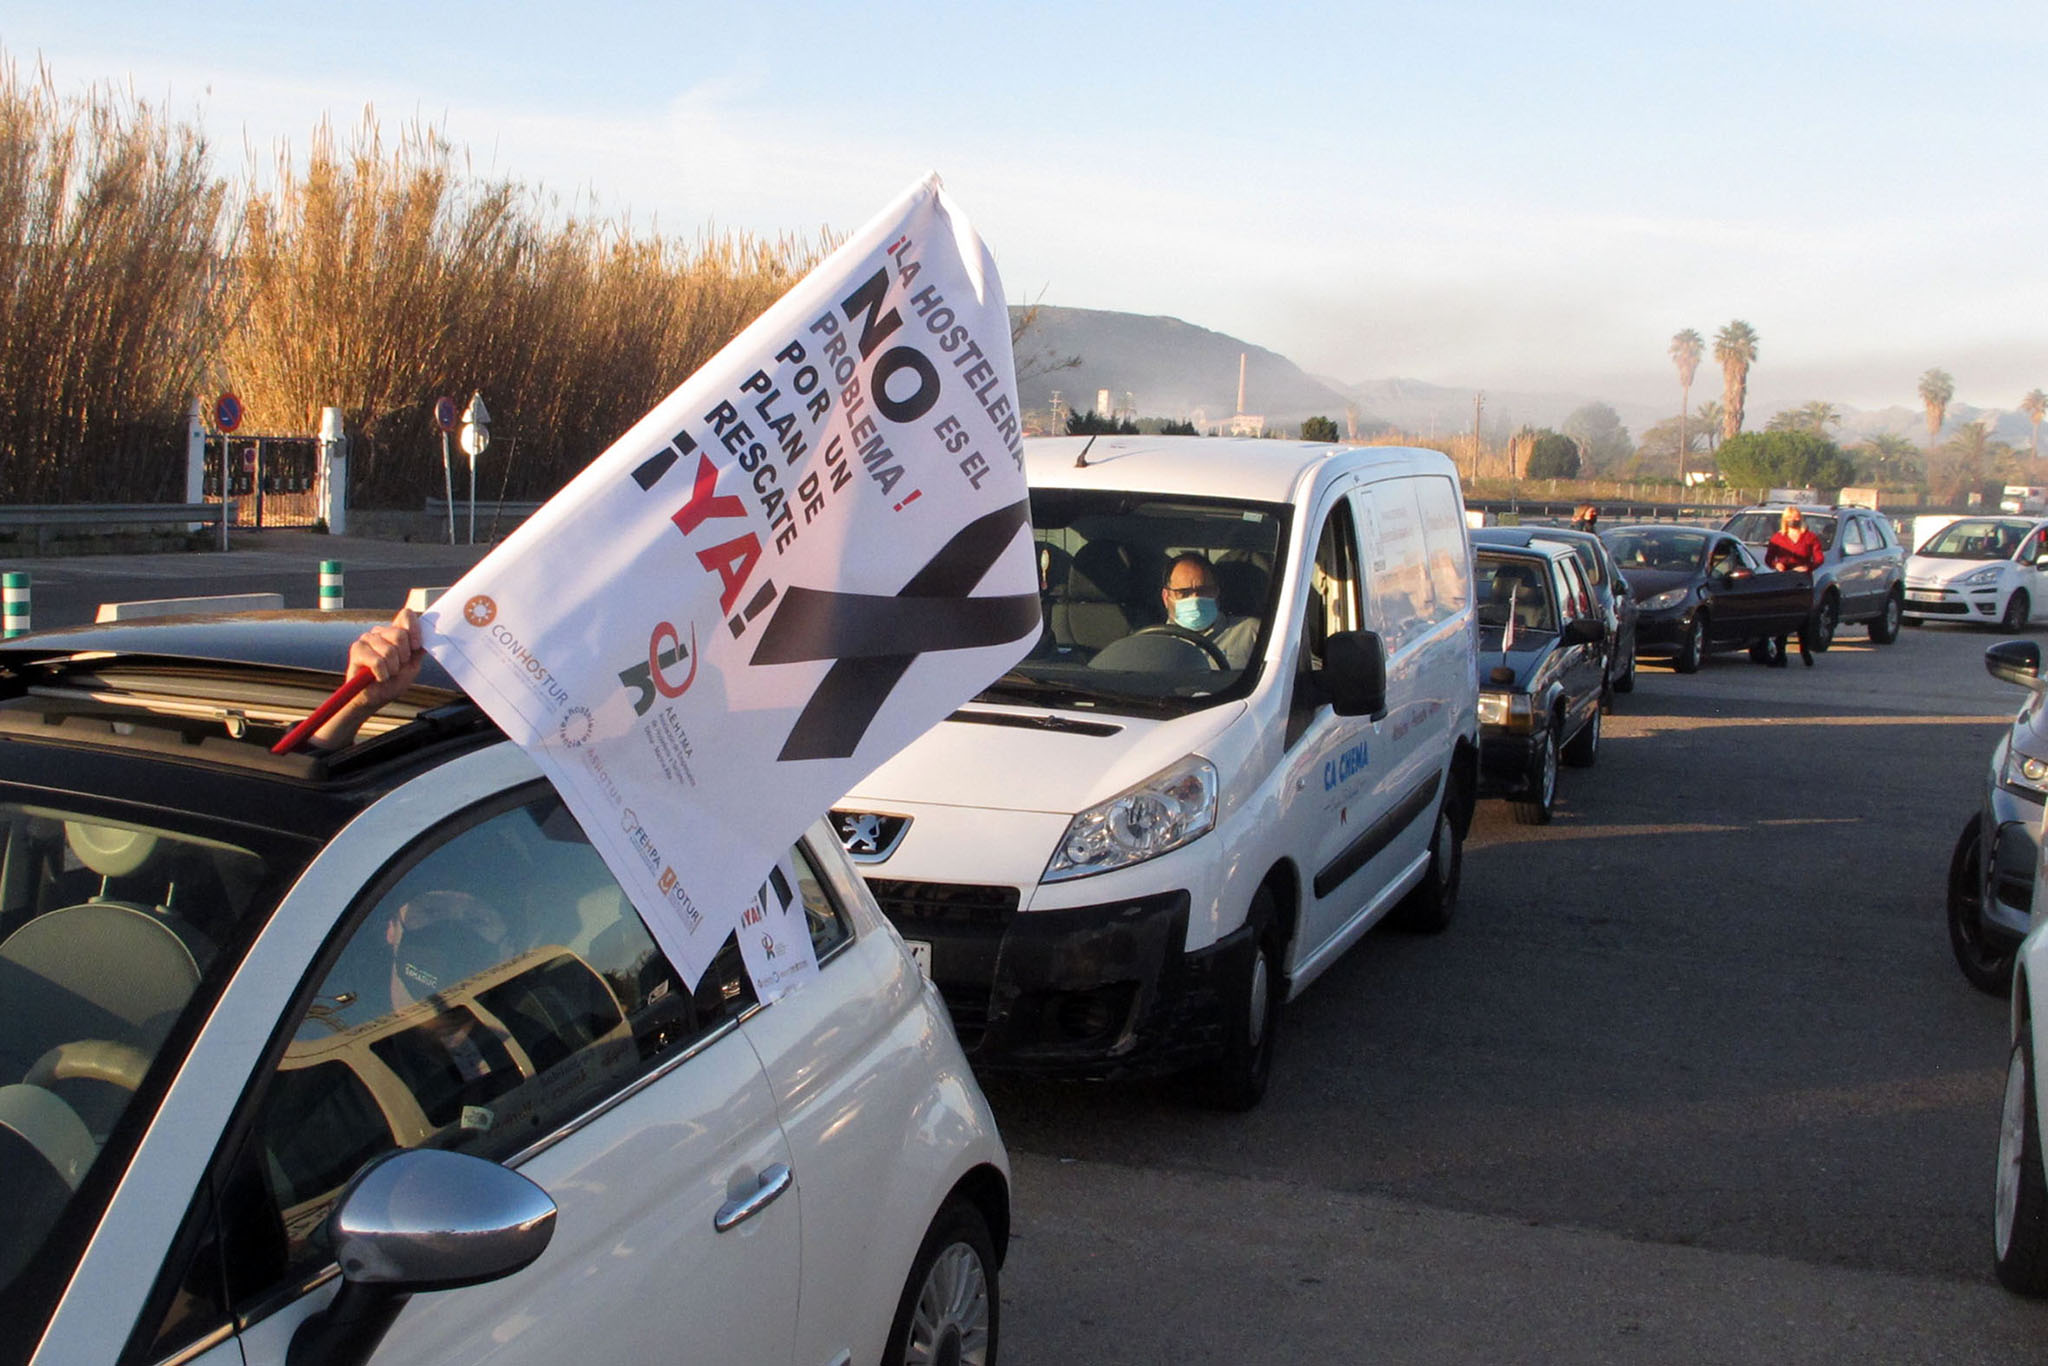 Demonstration of cars in Dénia of the hospitality industry